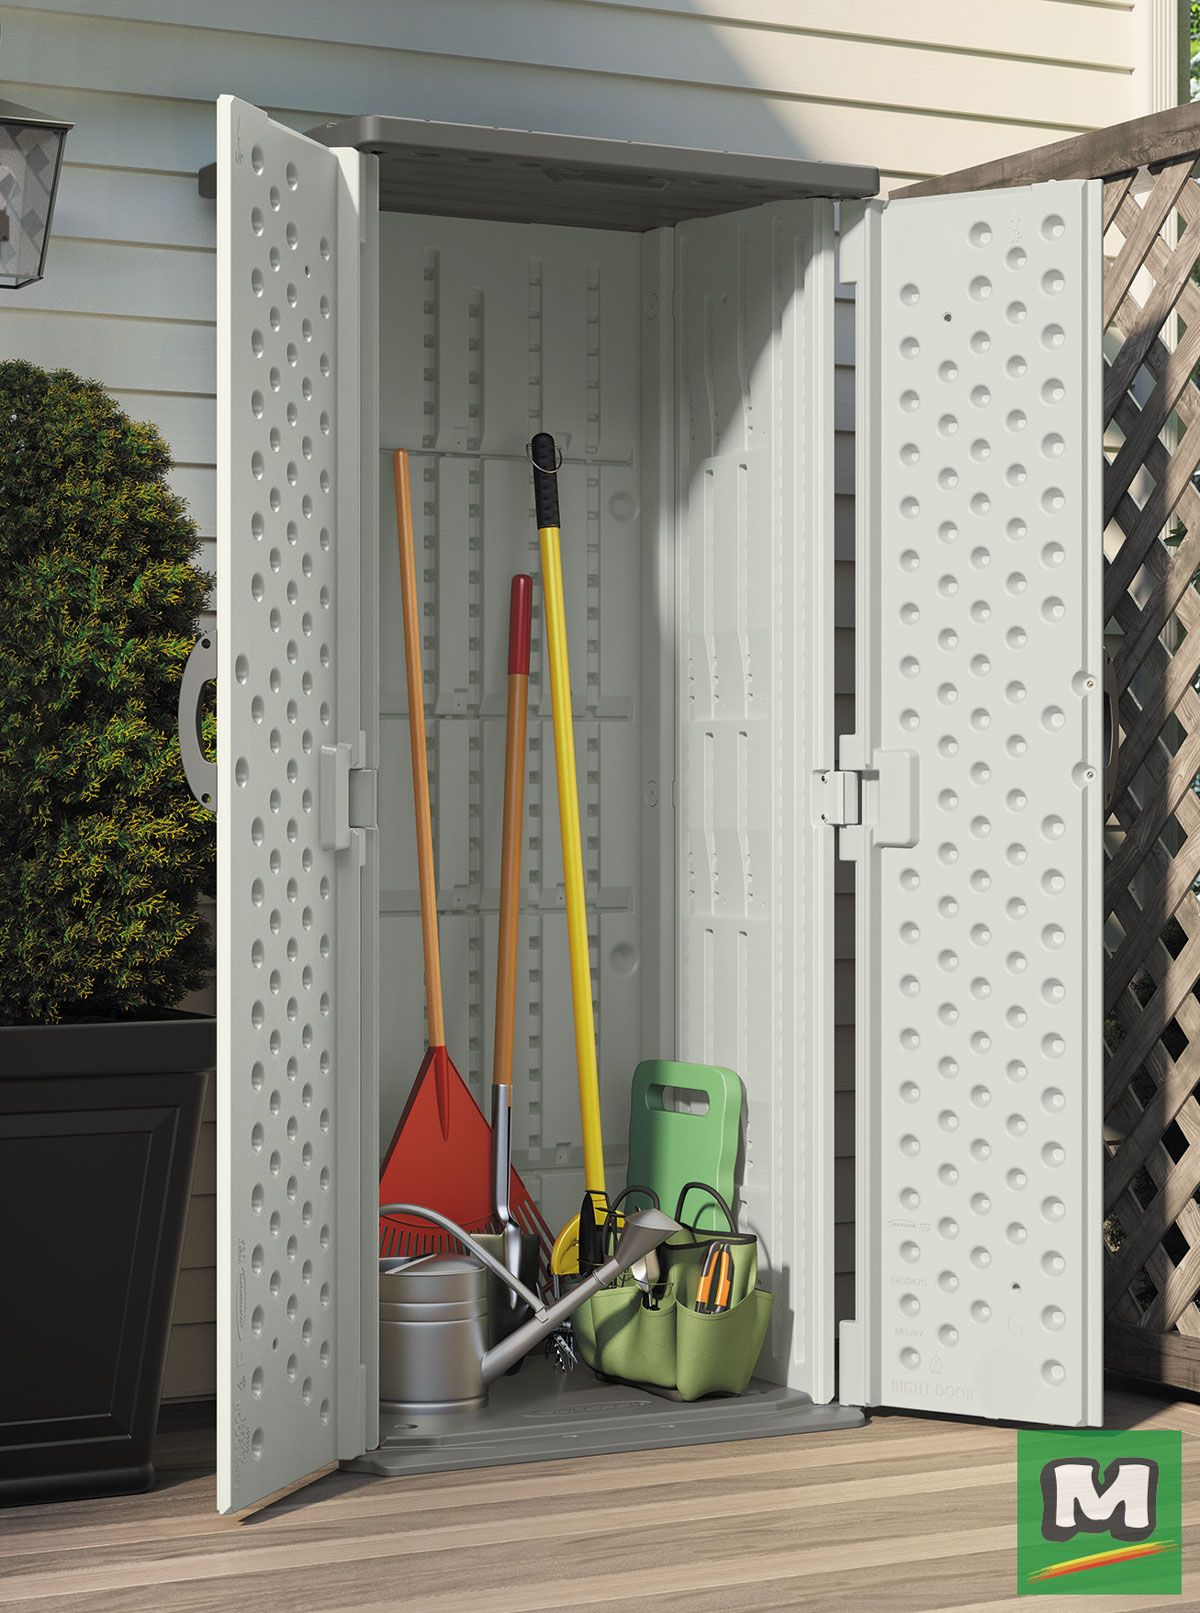 Store garden supplies, pool and patio items and more in